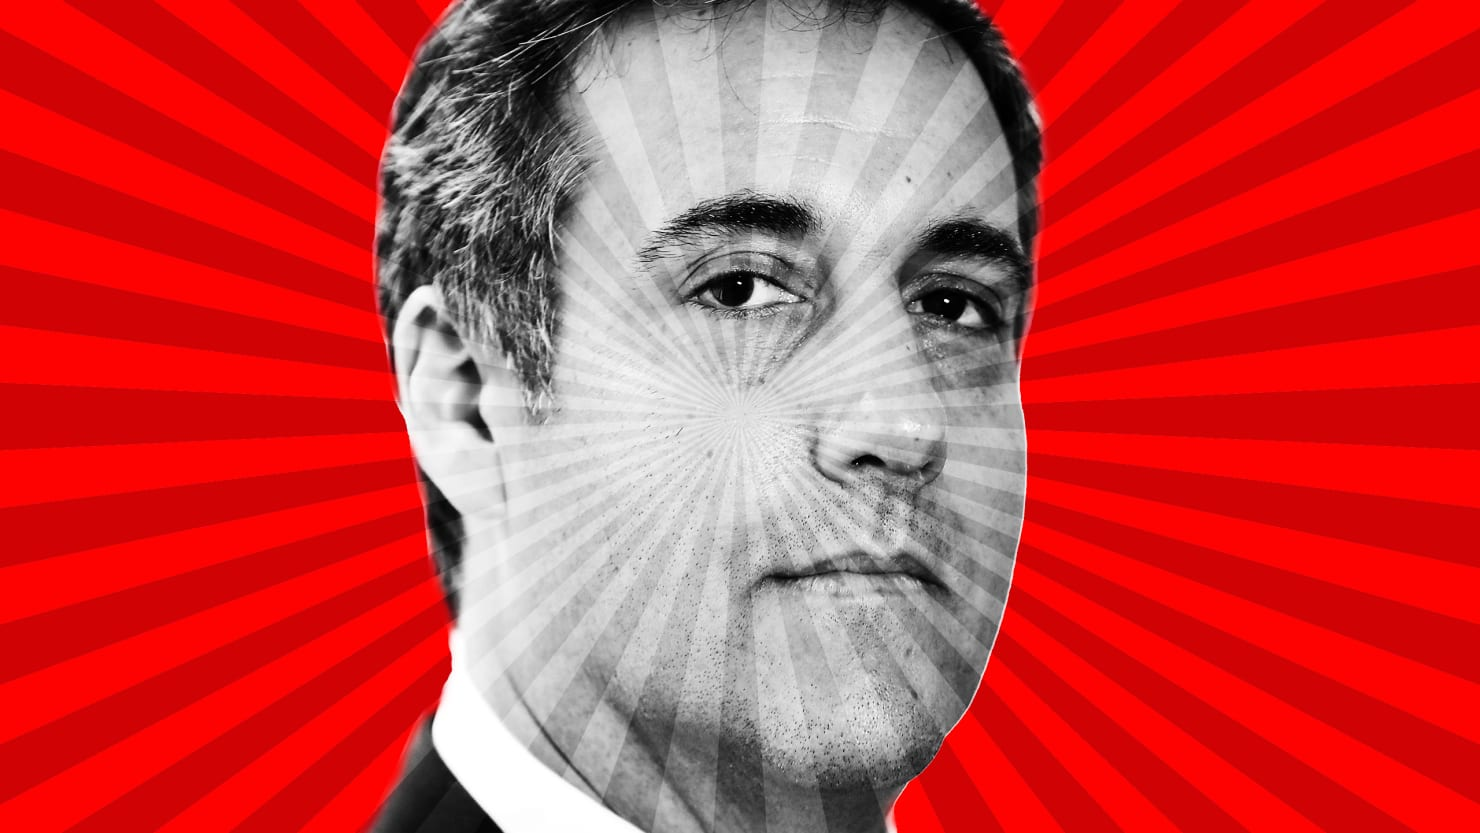 Trump's Longtime Lawyer, Michael Cohen, Knows Way Too Much. So Why is He Still in Exile?